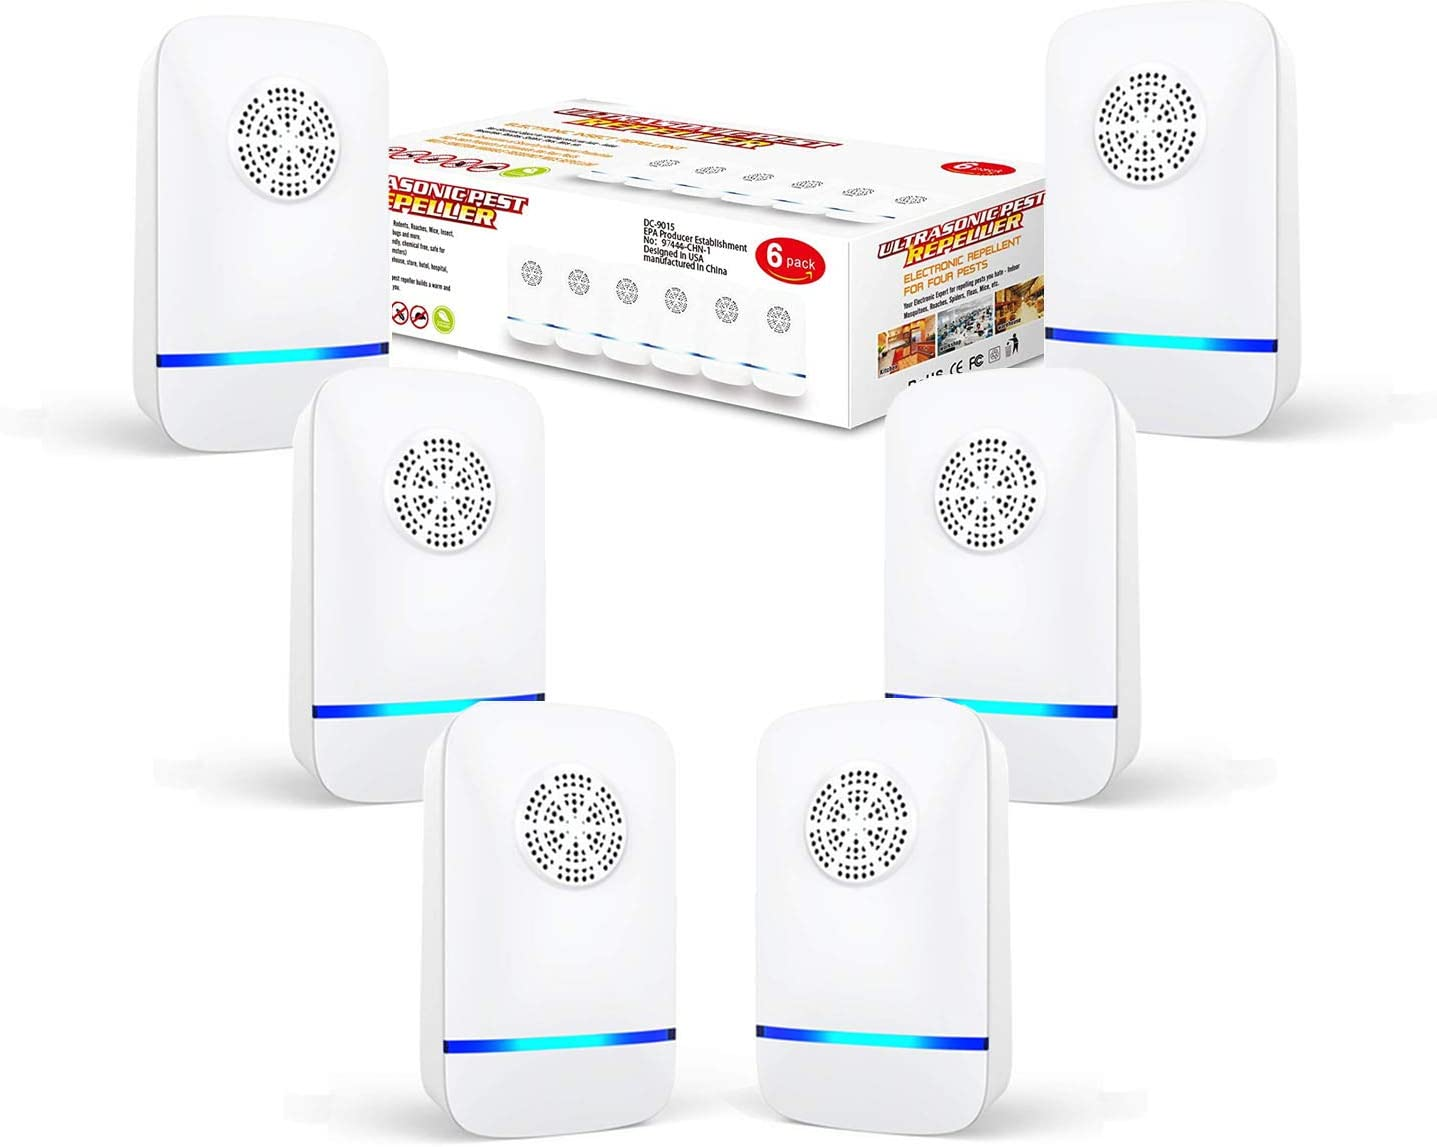 Ultrasonic Pest Repeller(6 Pack), 2020 Pest Control Ultrasonic Repellent, Electronic Repellant - Bug Repellent for Mice, Ant, Mosquito, Spider, Roach, Rat, Flea, Fly